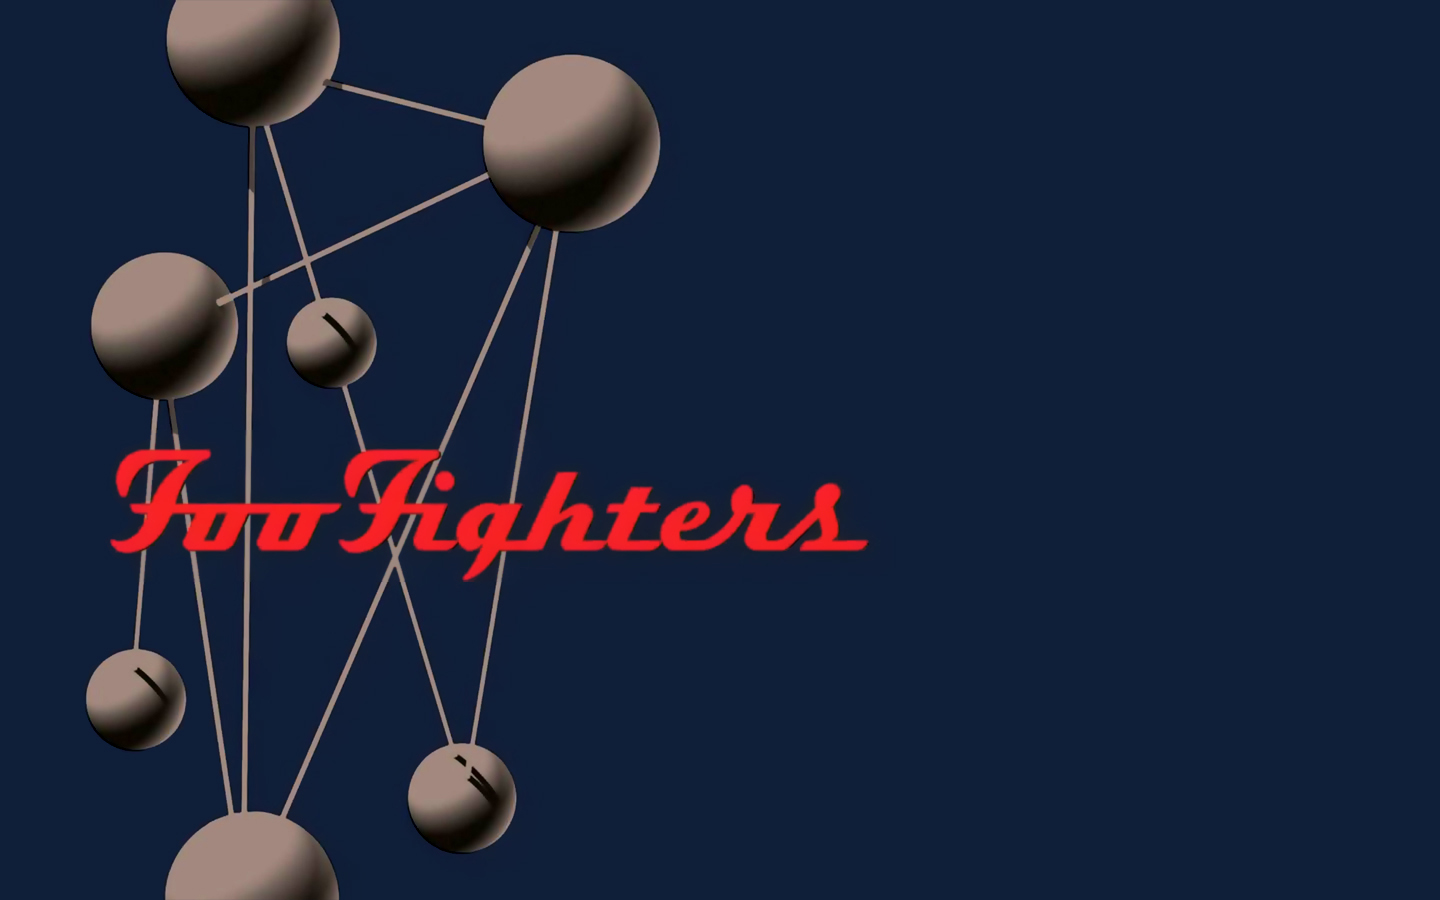 foofighters shape2007 post your album art 578771 1440x900